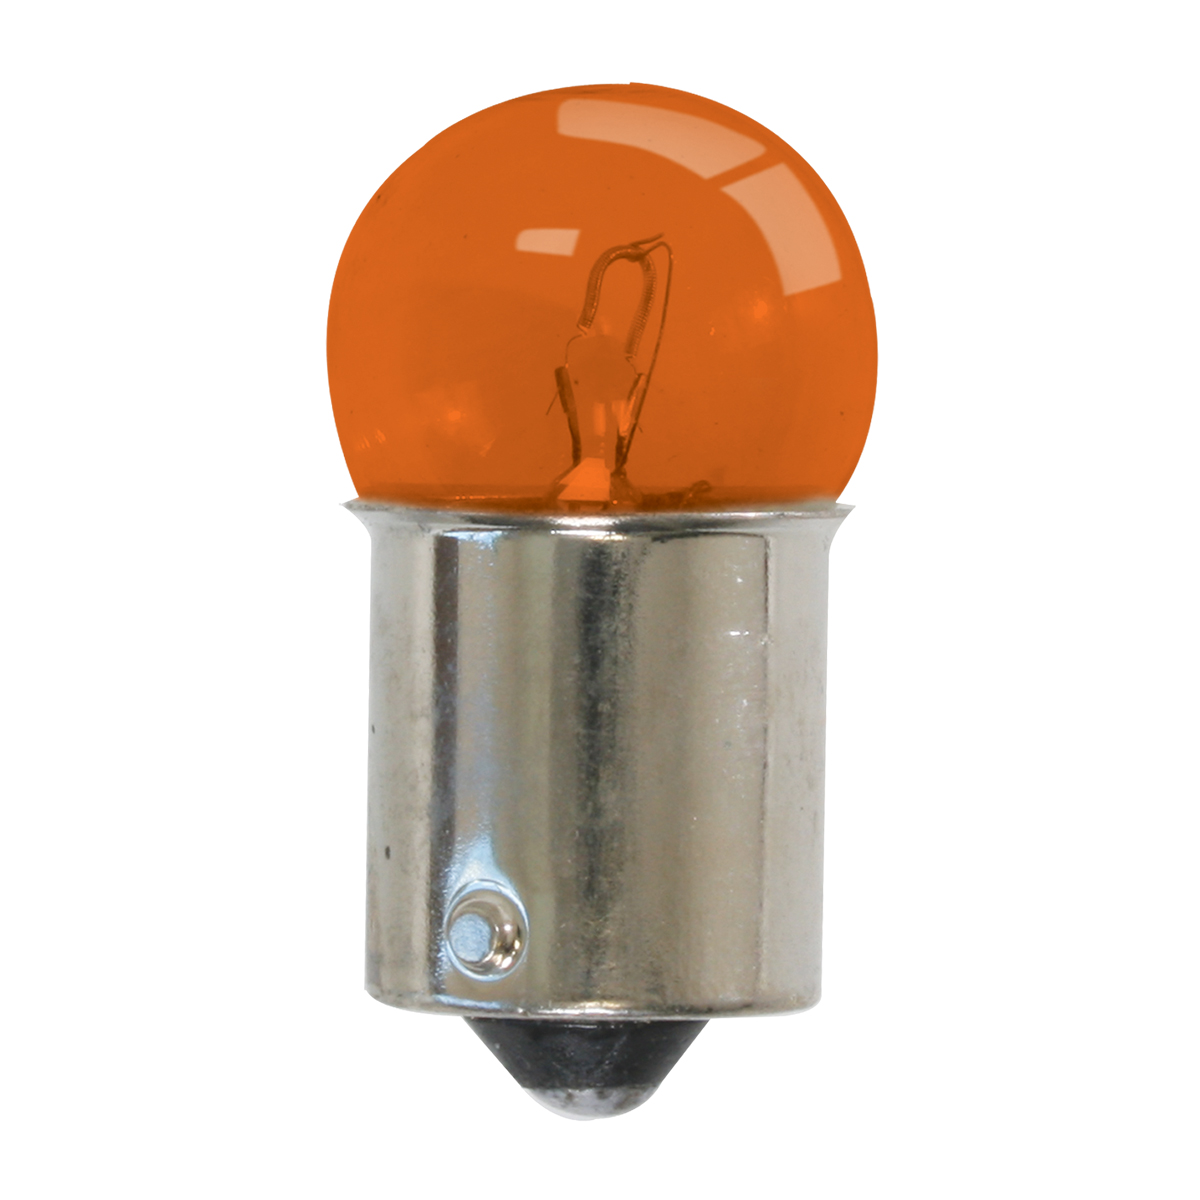 #79150 Miniature Replacement #97 Amber Light Bulb